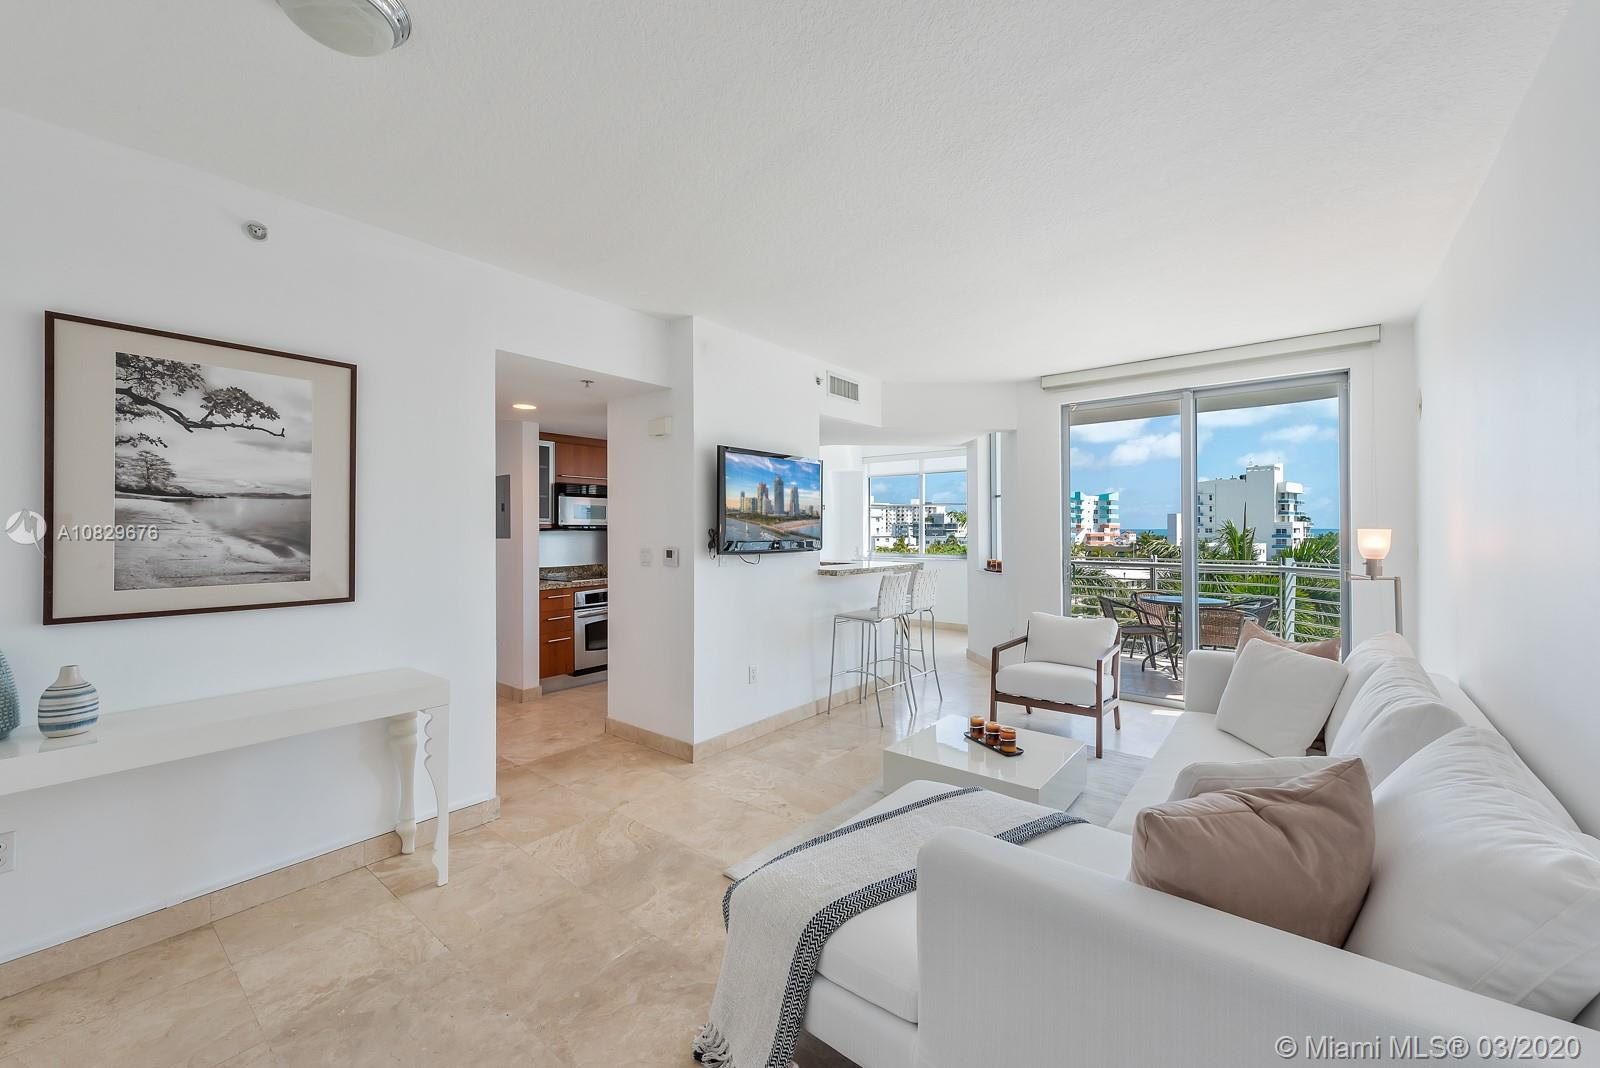 110 Washington Ave # 2605, Miami Beach, Florida 33139, 1 Bedroom Bedrooms, ,2 BathroomsBathrooms,Residential,For Sale,110 Washington Ave # 2605,A10829676